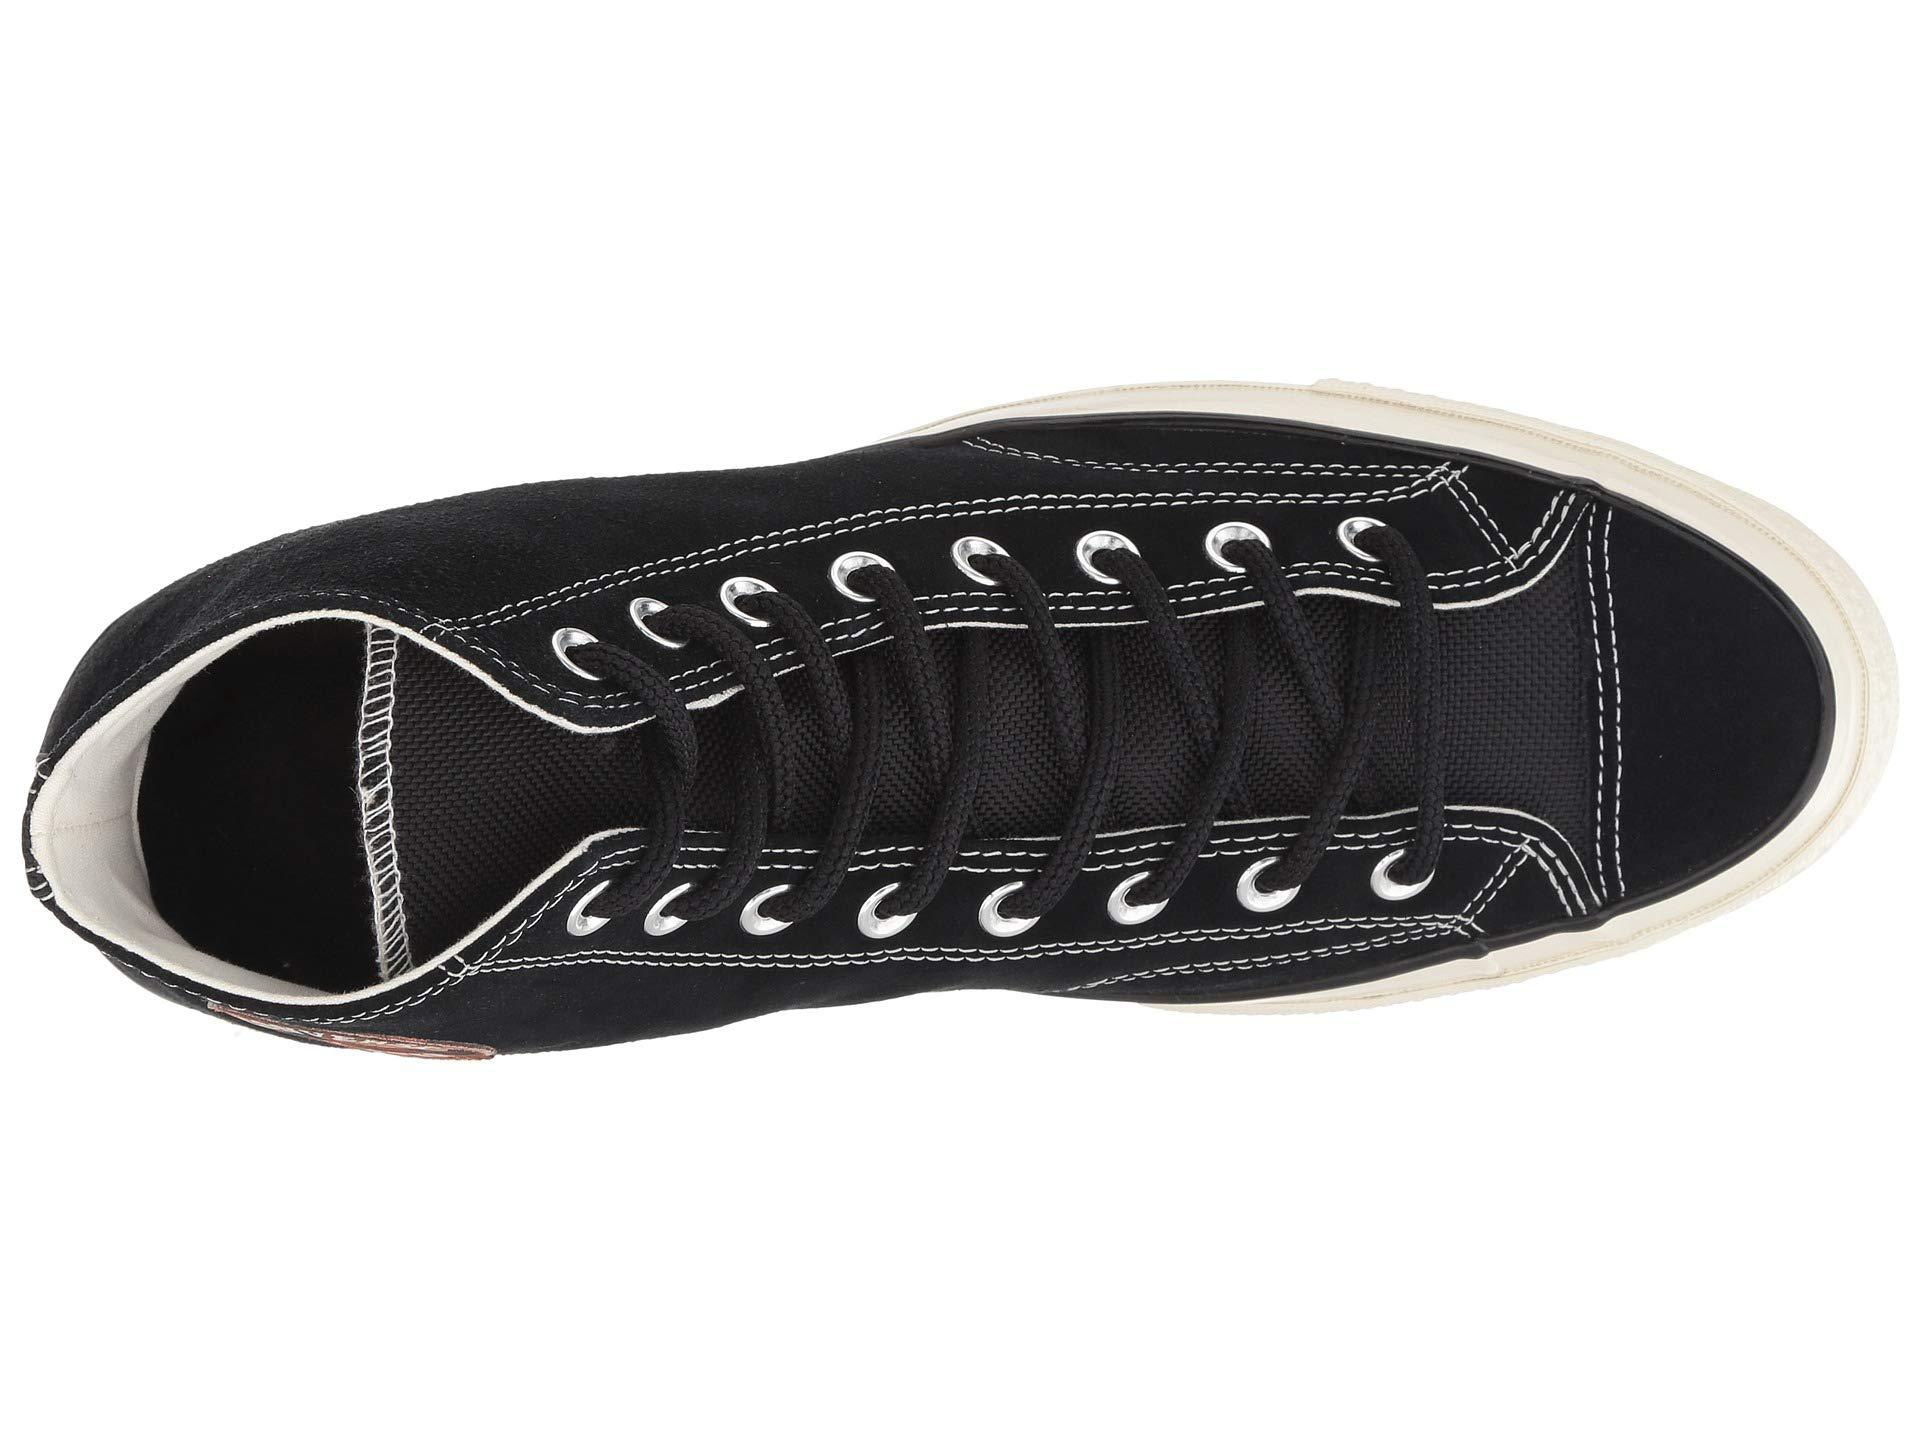 aed185198d7b74 Converse - Black Chuck Taylor 70 Hi Base Camp Suede Sneakers - Lyst. View  fullscreen